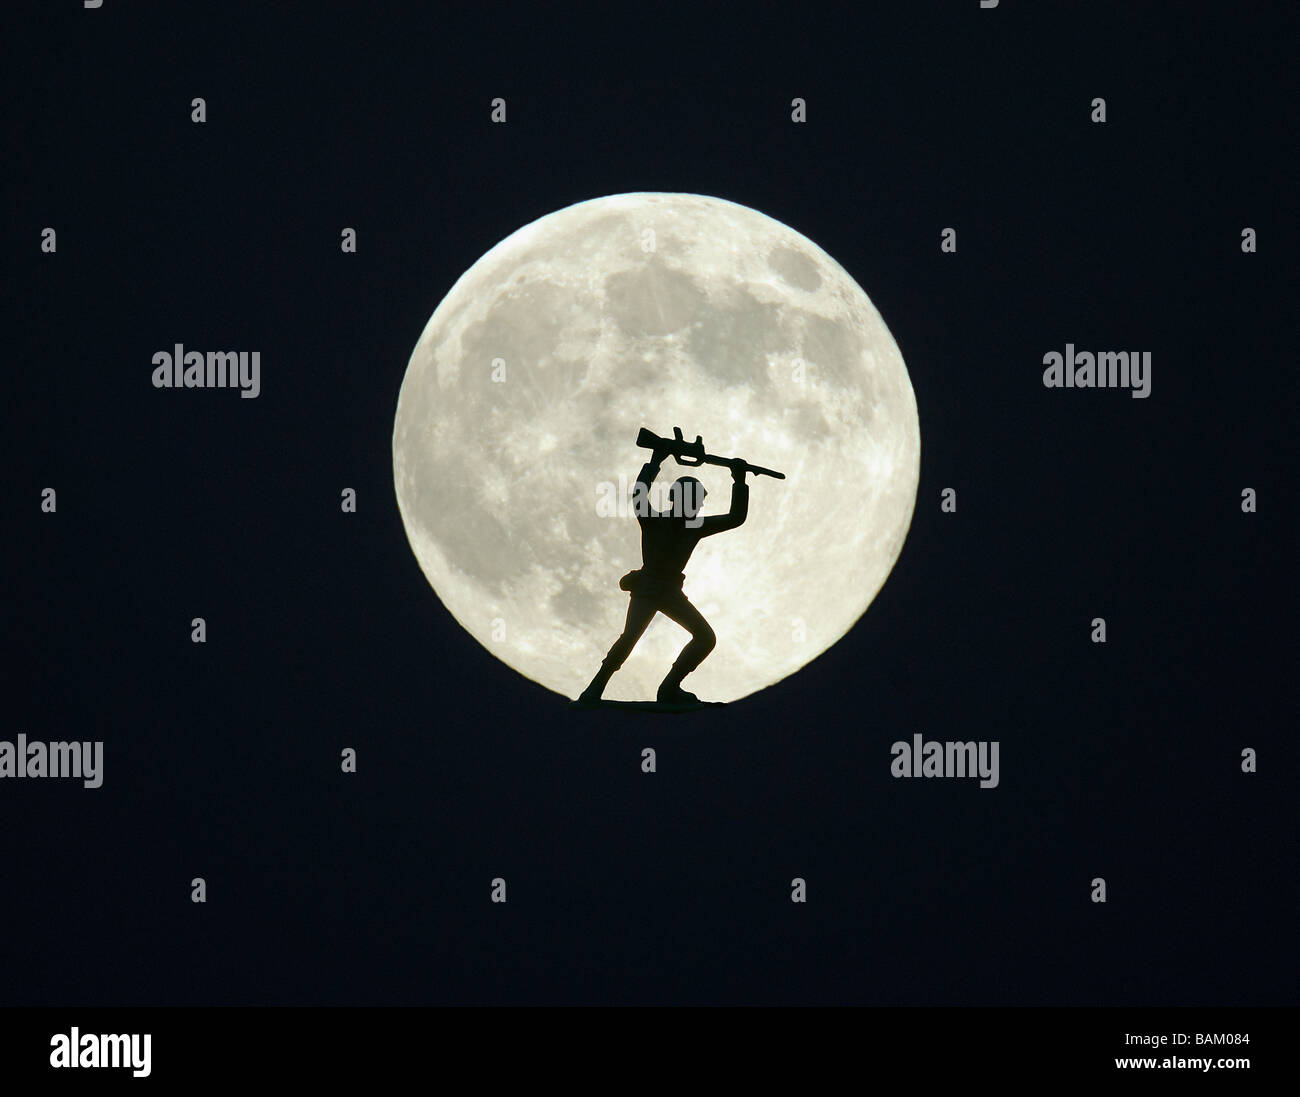 Toy soldier against full moon - Stock Image